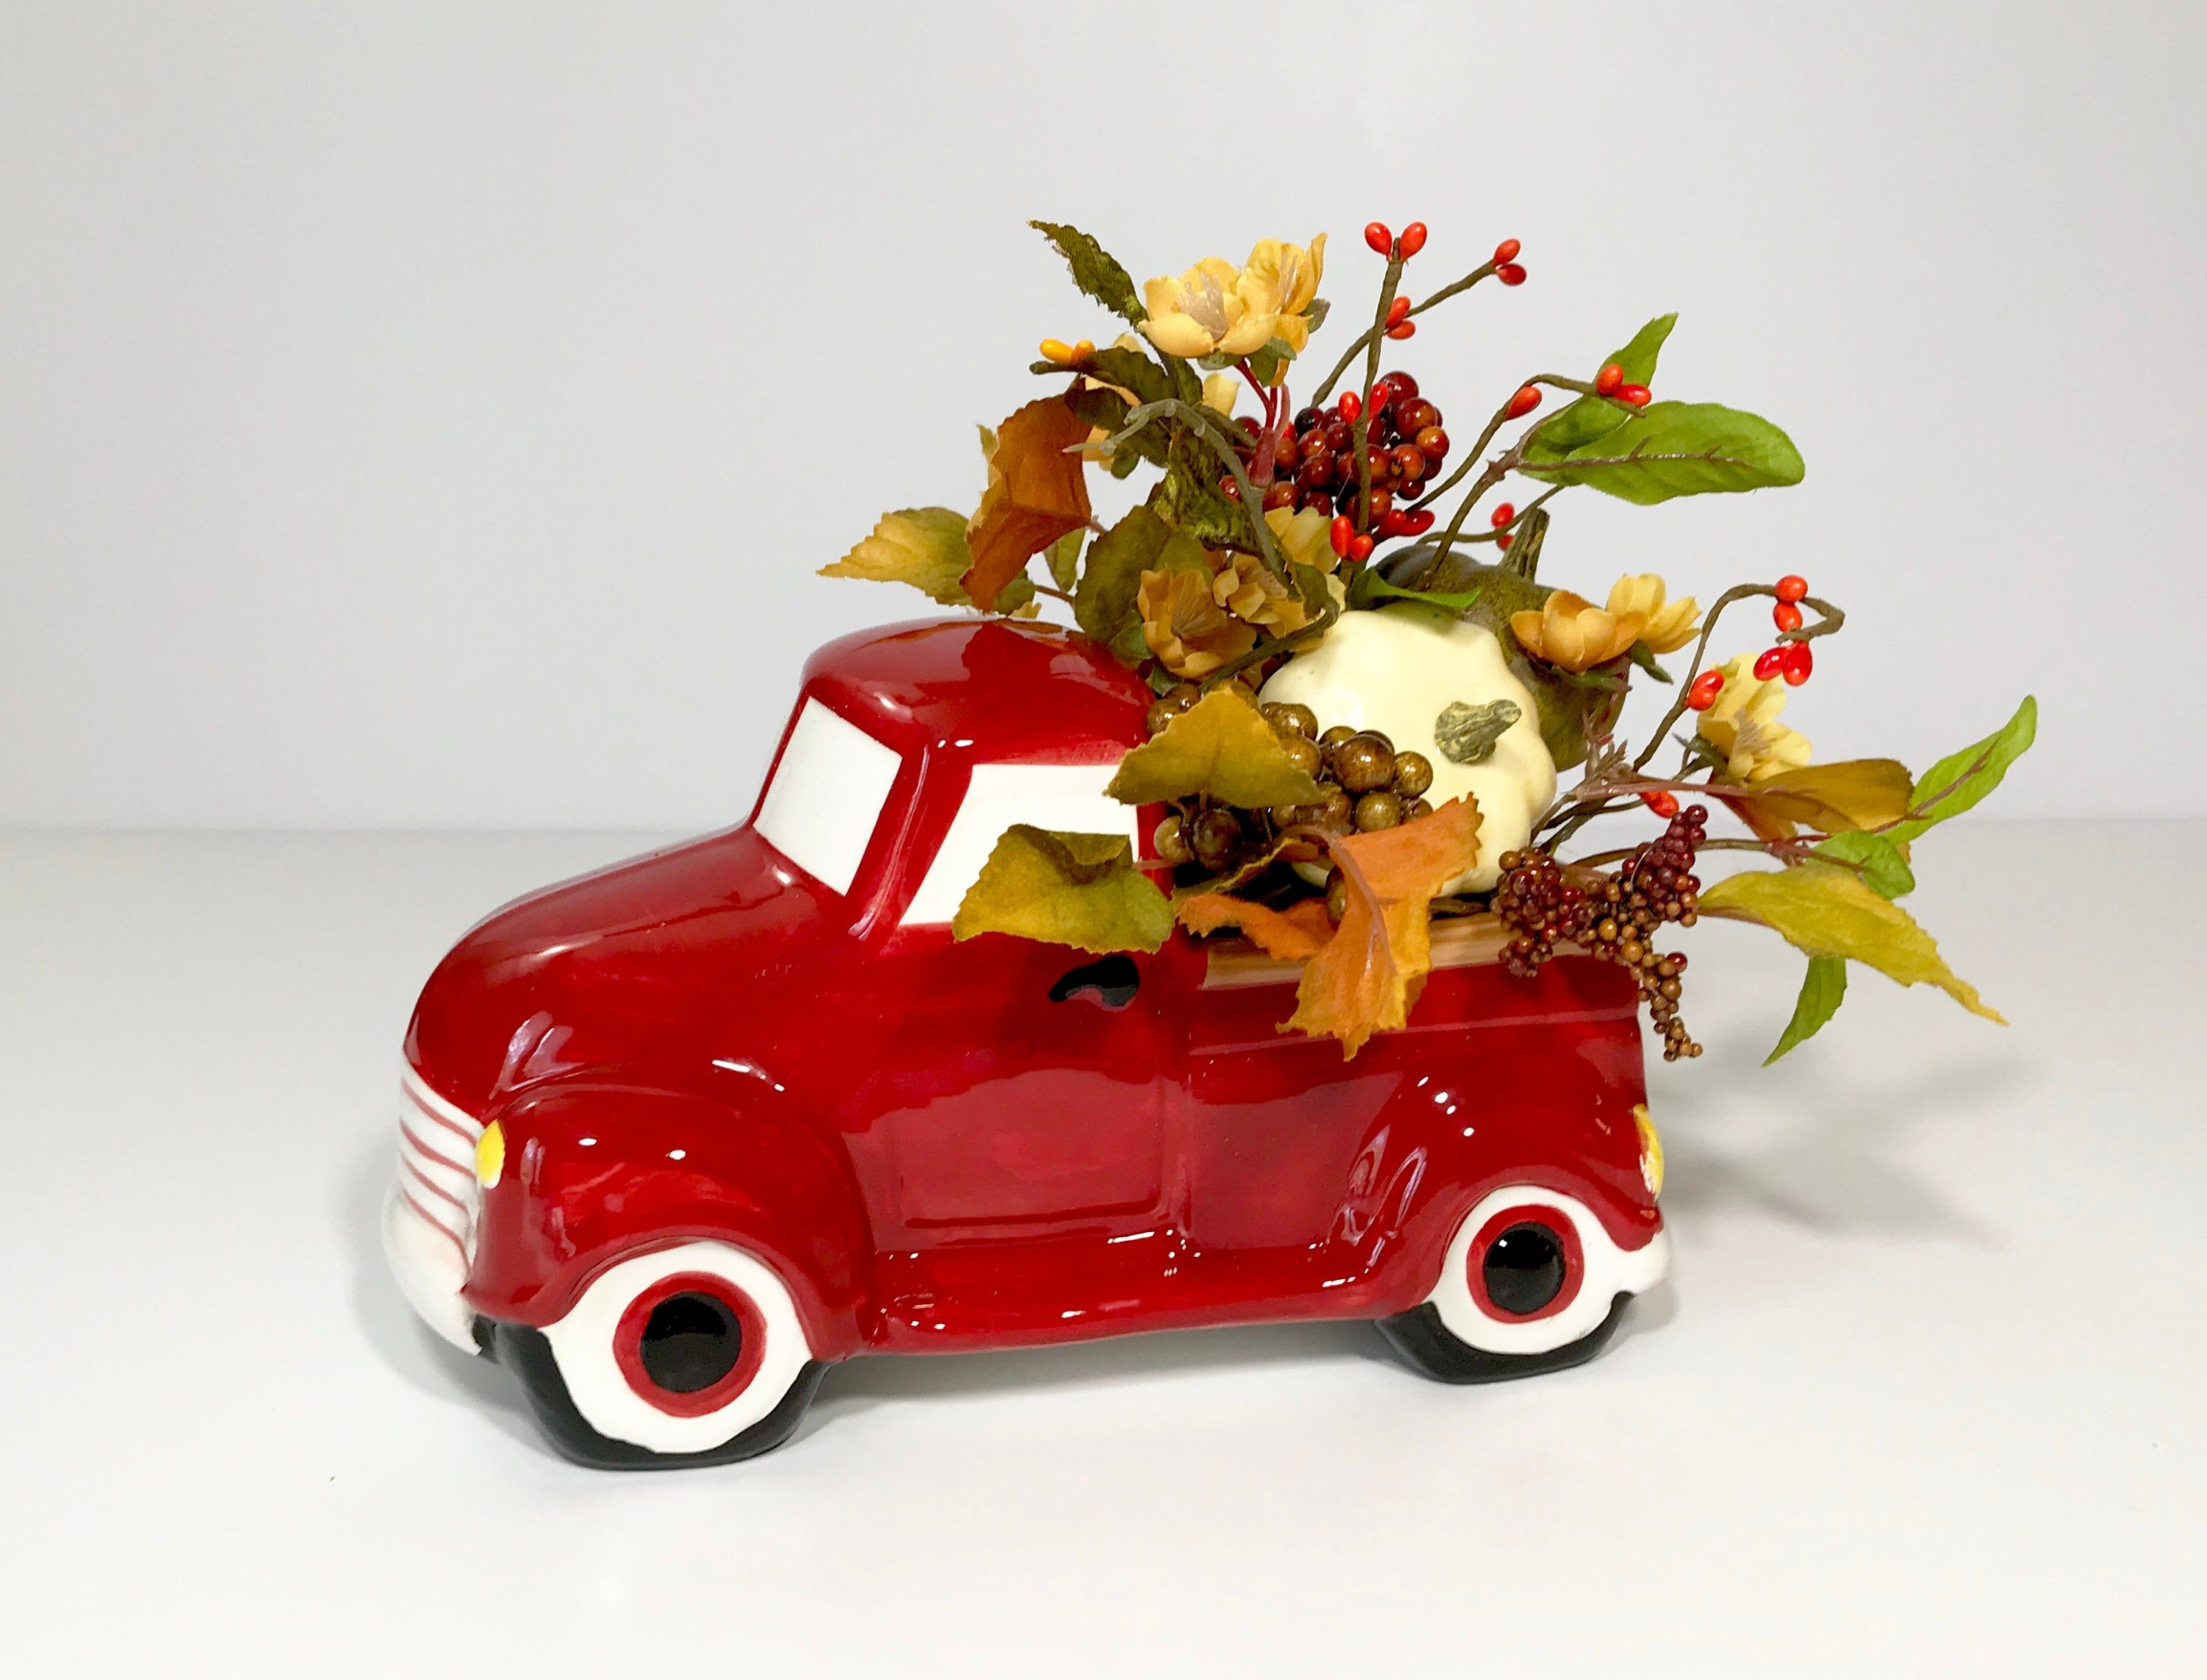 Ceramic Small Pickup Truck Novelty Planter Small Fall Floral Etsy In 2020 Fall Floral Arrangements Small Pickup Trucks Novelty Planters